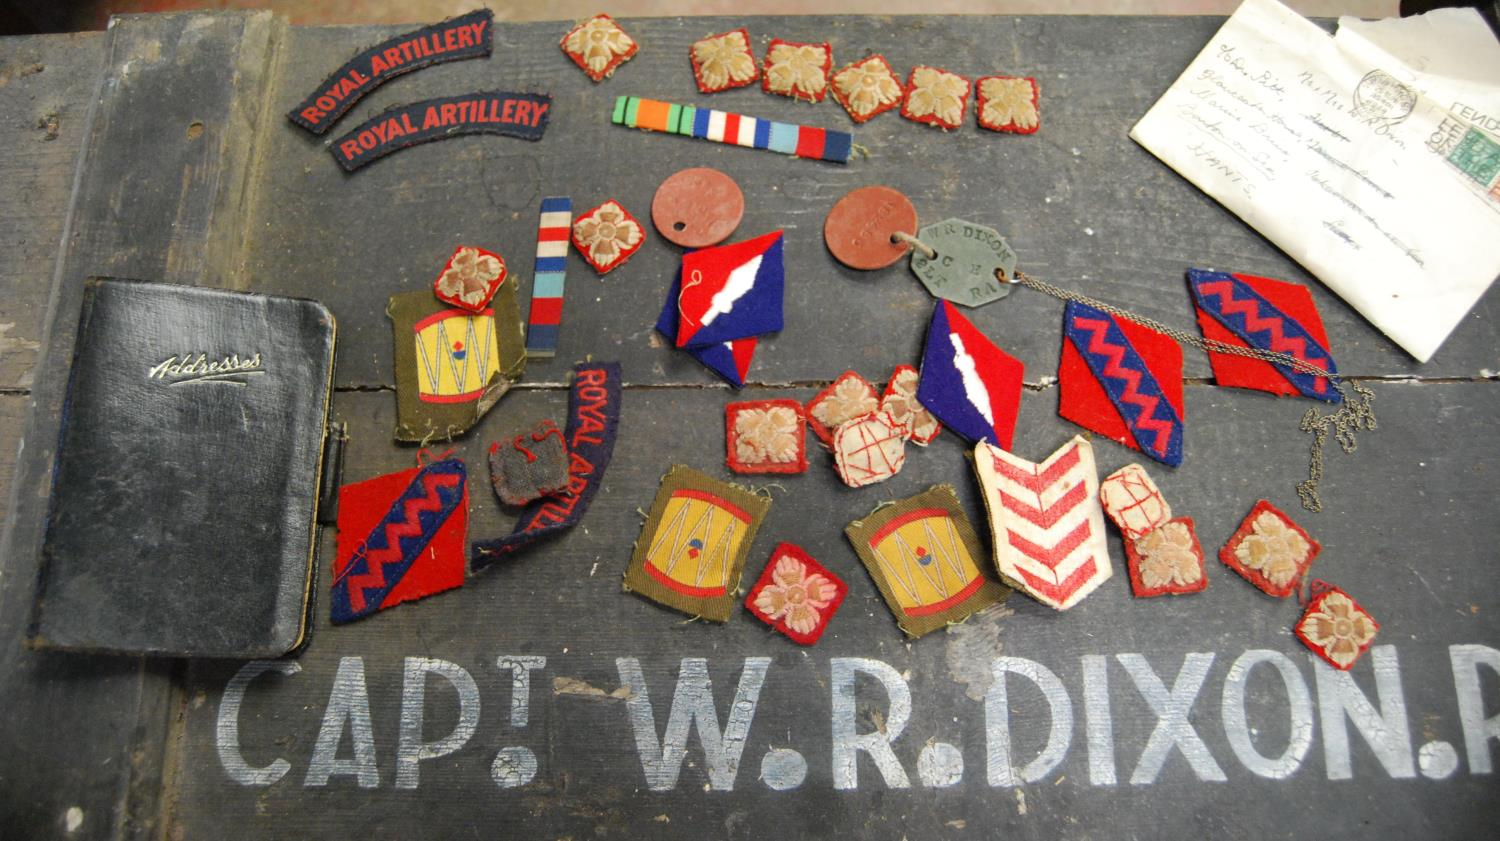 Military ephemera relating to Captain WR Dixon, 182485 Royal Artillery including cap, trench coat, - Image 3 of 5